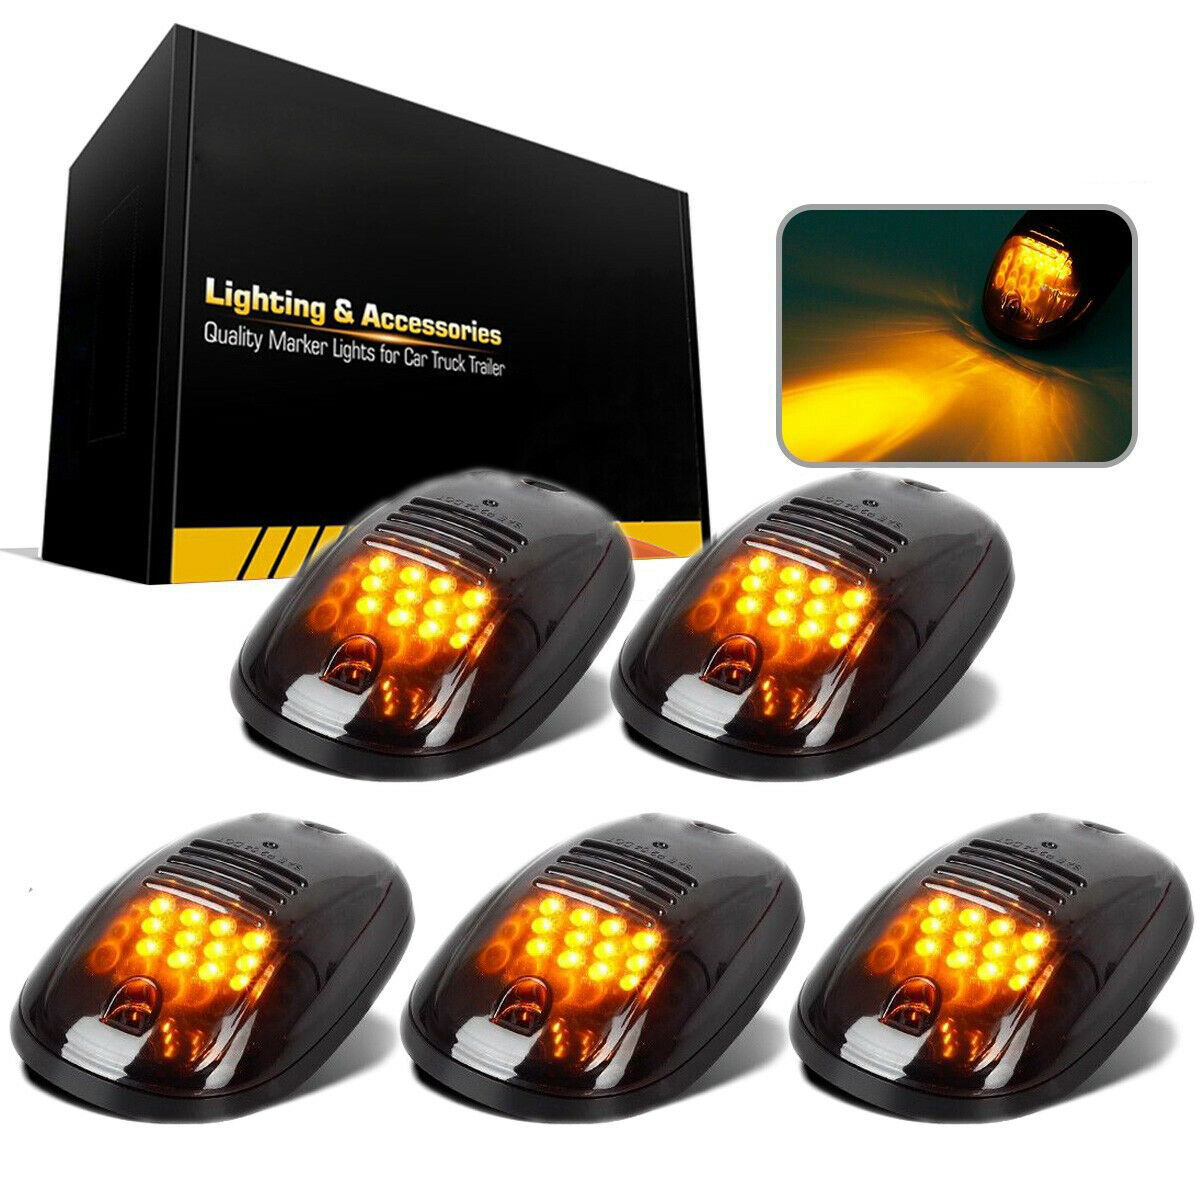 Set Car Lights 12 LED Assembly Bulbs Cab Roof Top Replacement Marker Running For Dodge Ram Accessories Durable Parts